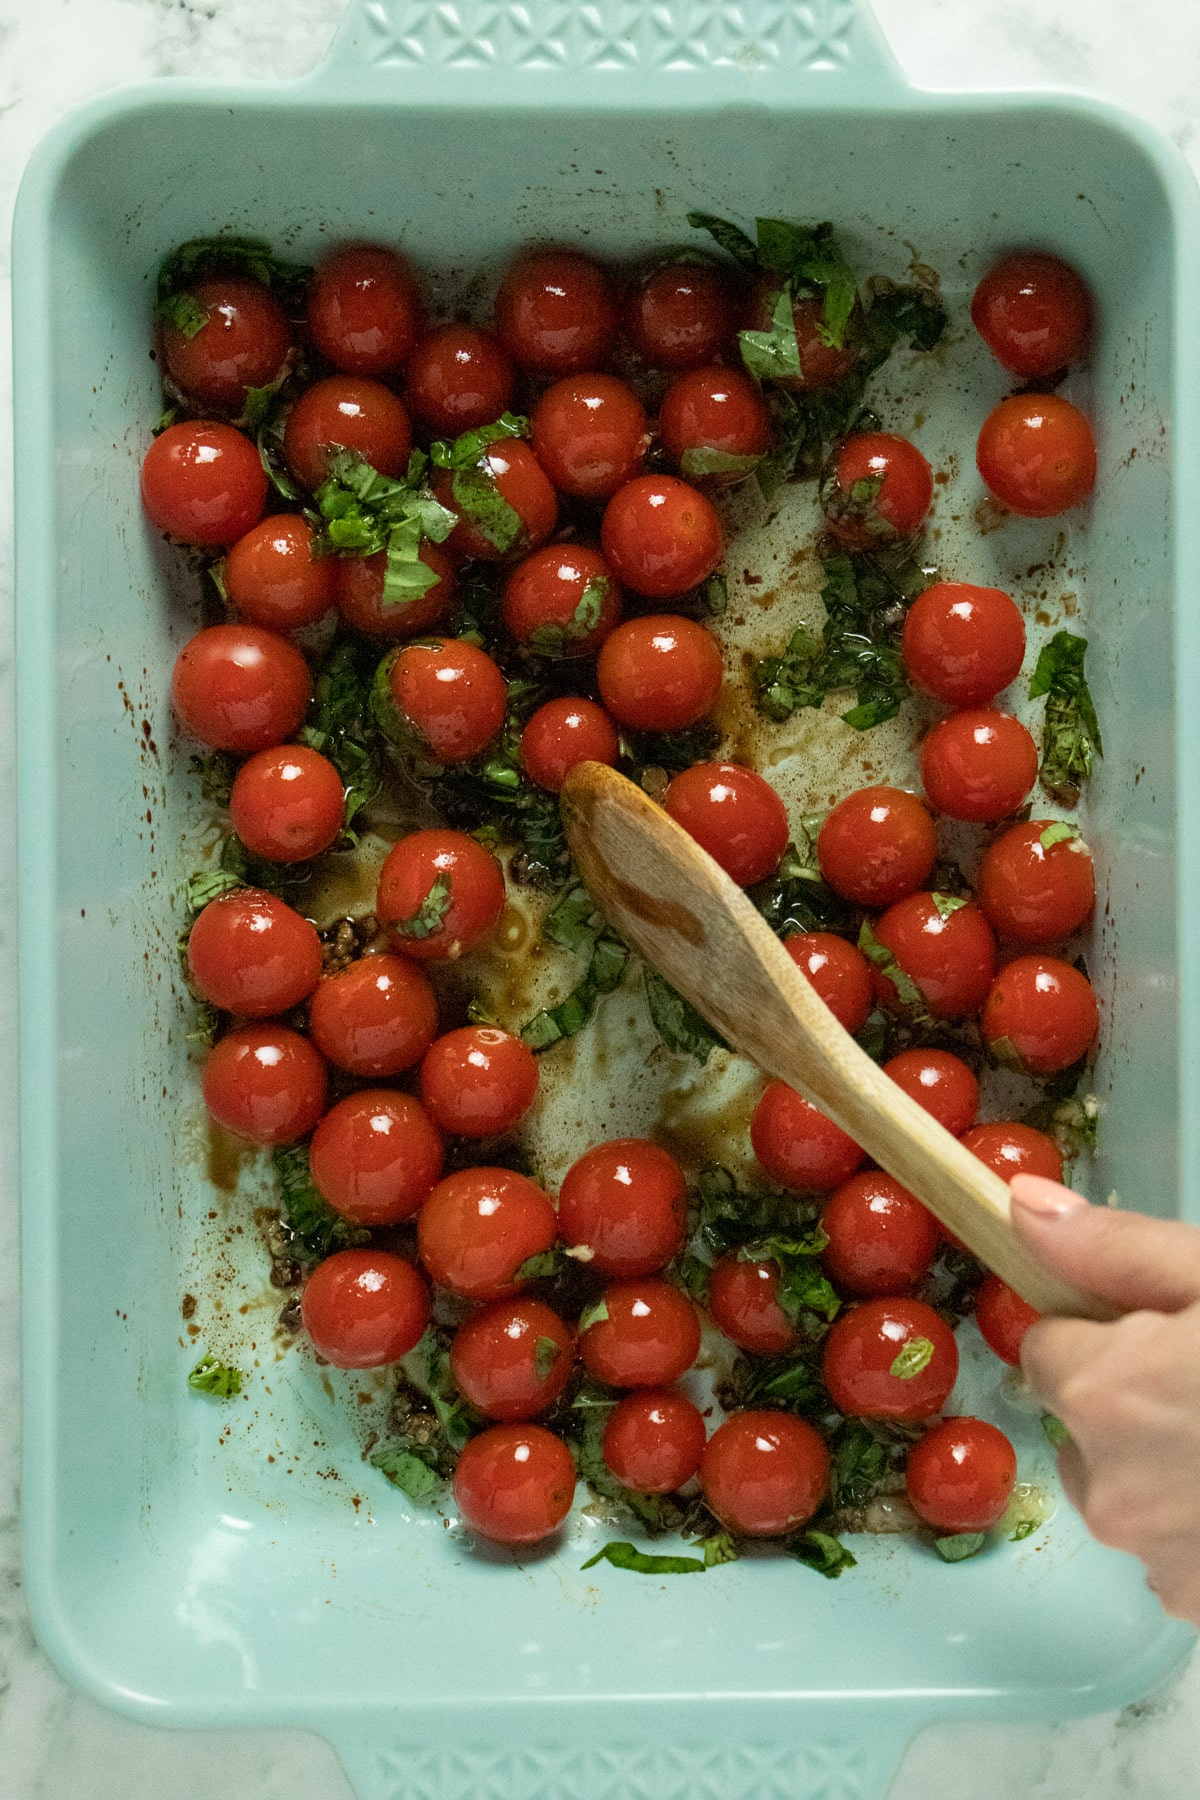 overhead photo of wooden spoon stirring cherry tomatoes with olive oil, vinegar, garlic, and basil in a light blue baking pan